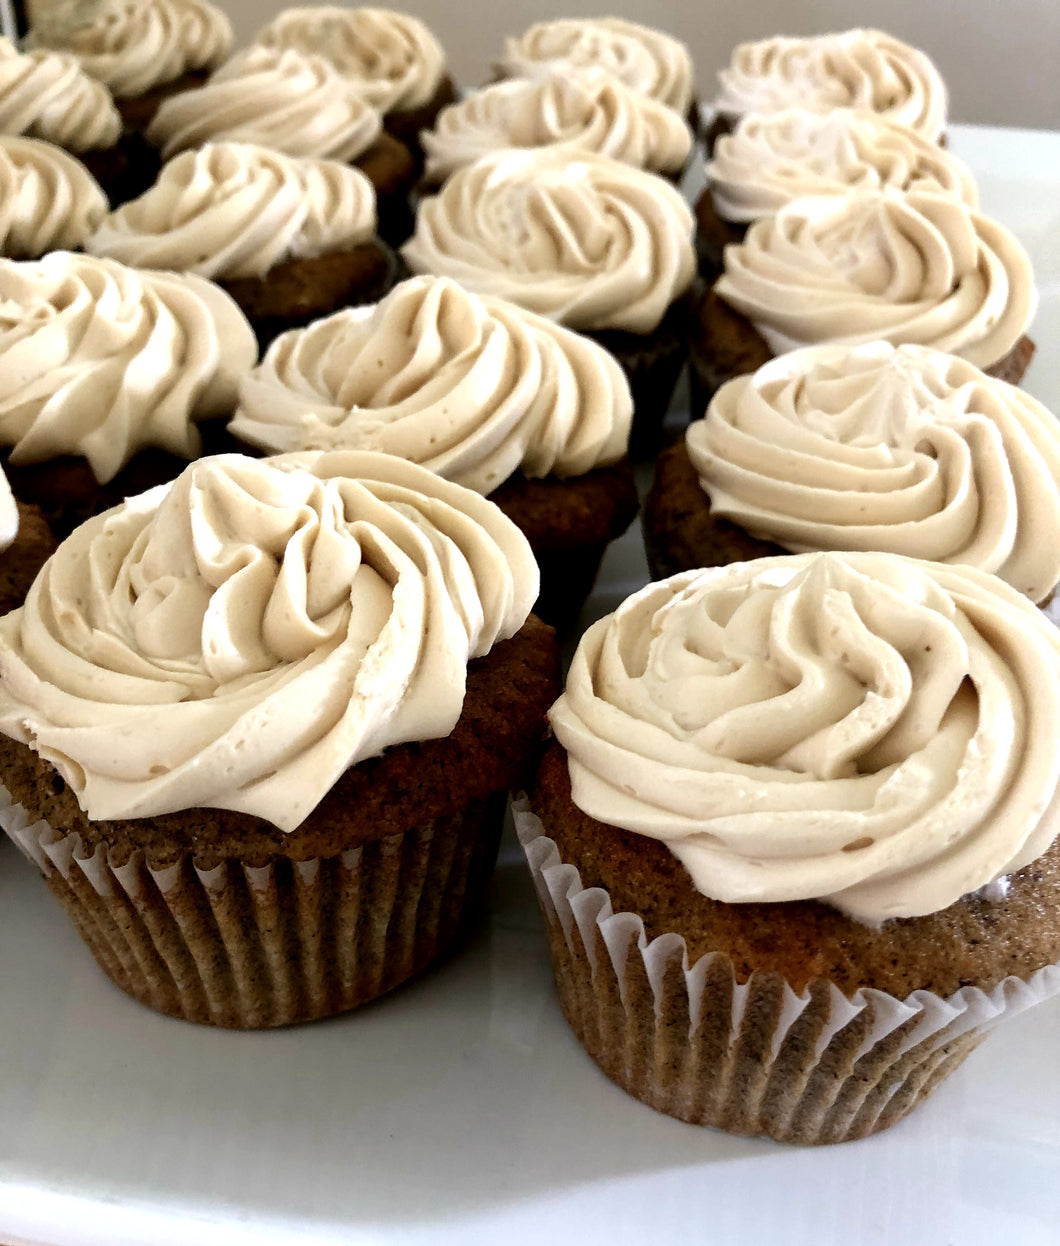 Tiny buckwheat cupcakes with brown sugar buttercream (GF)